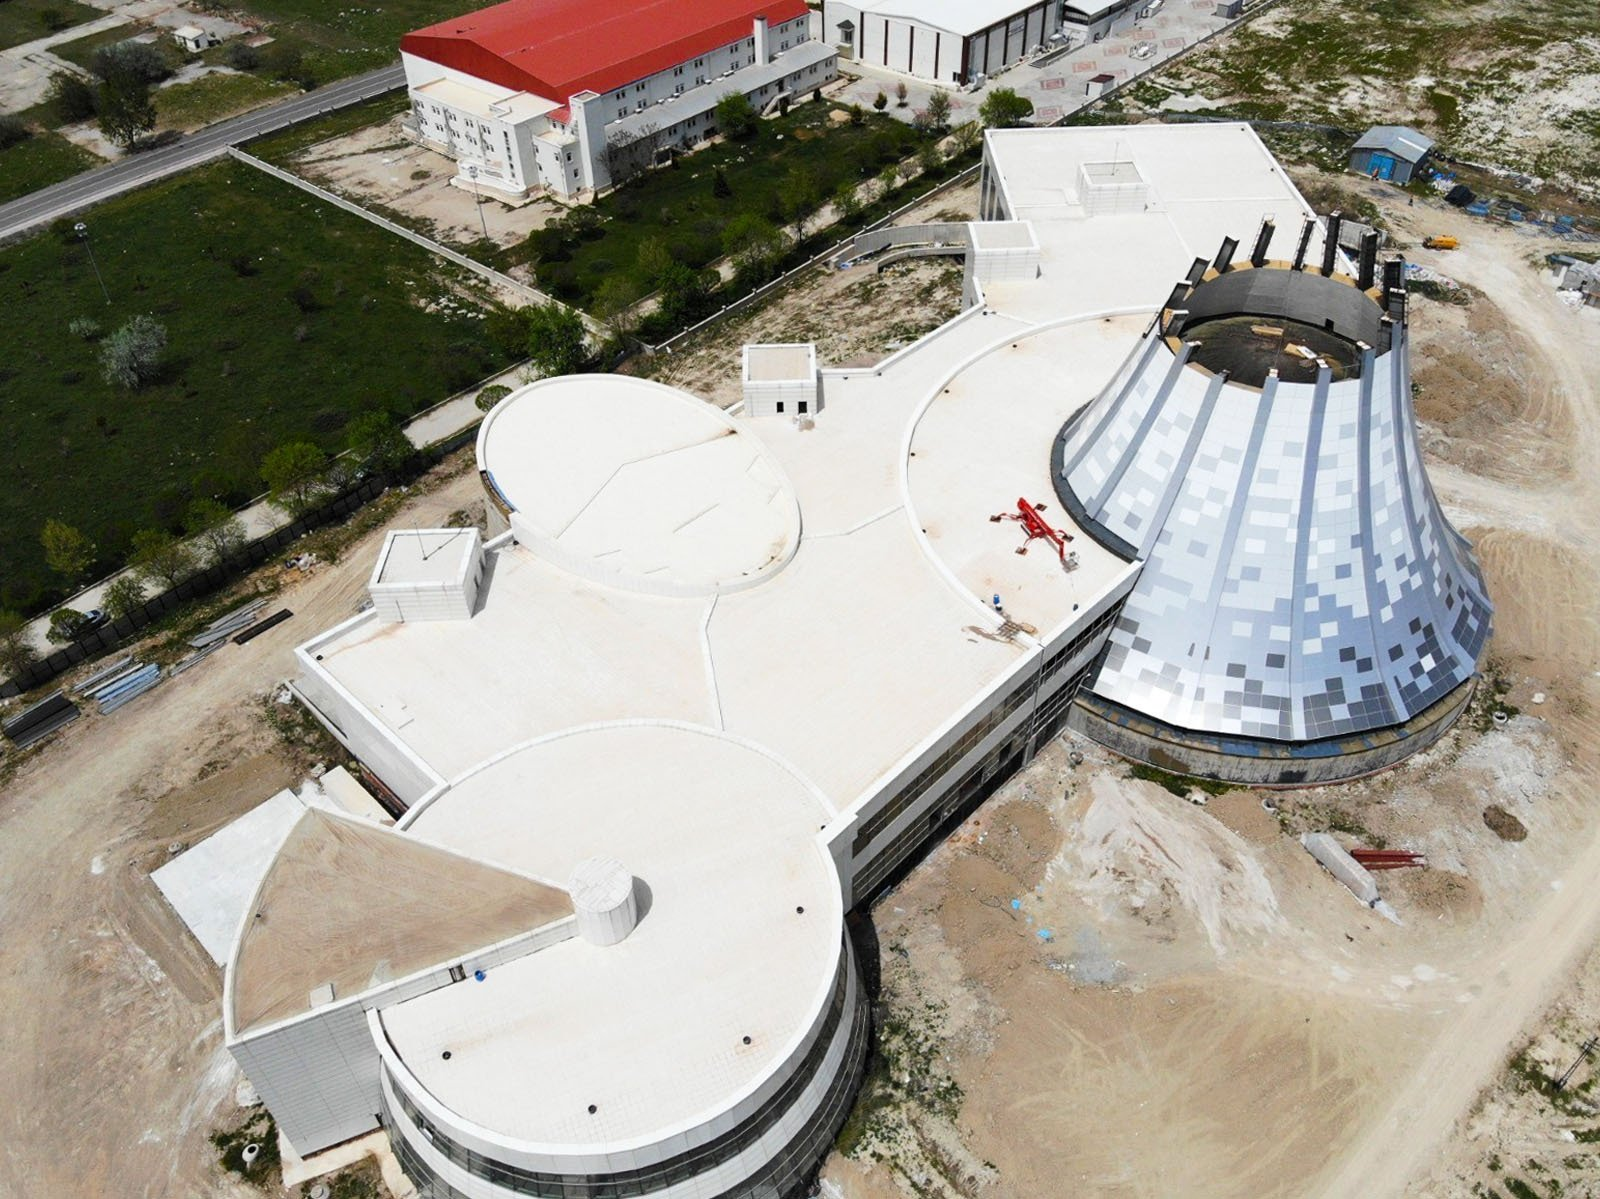 An aerial view shows the ongoing construction of a new museum in Afyonkarahisar, Turkey, May 22, 2021. (IHA Photo)